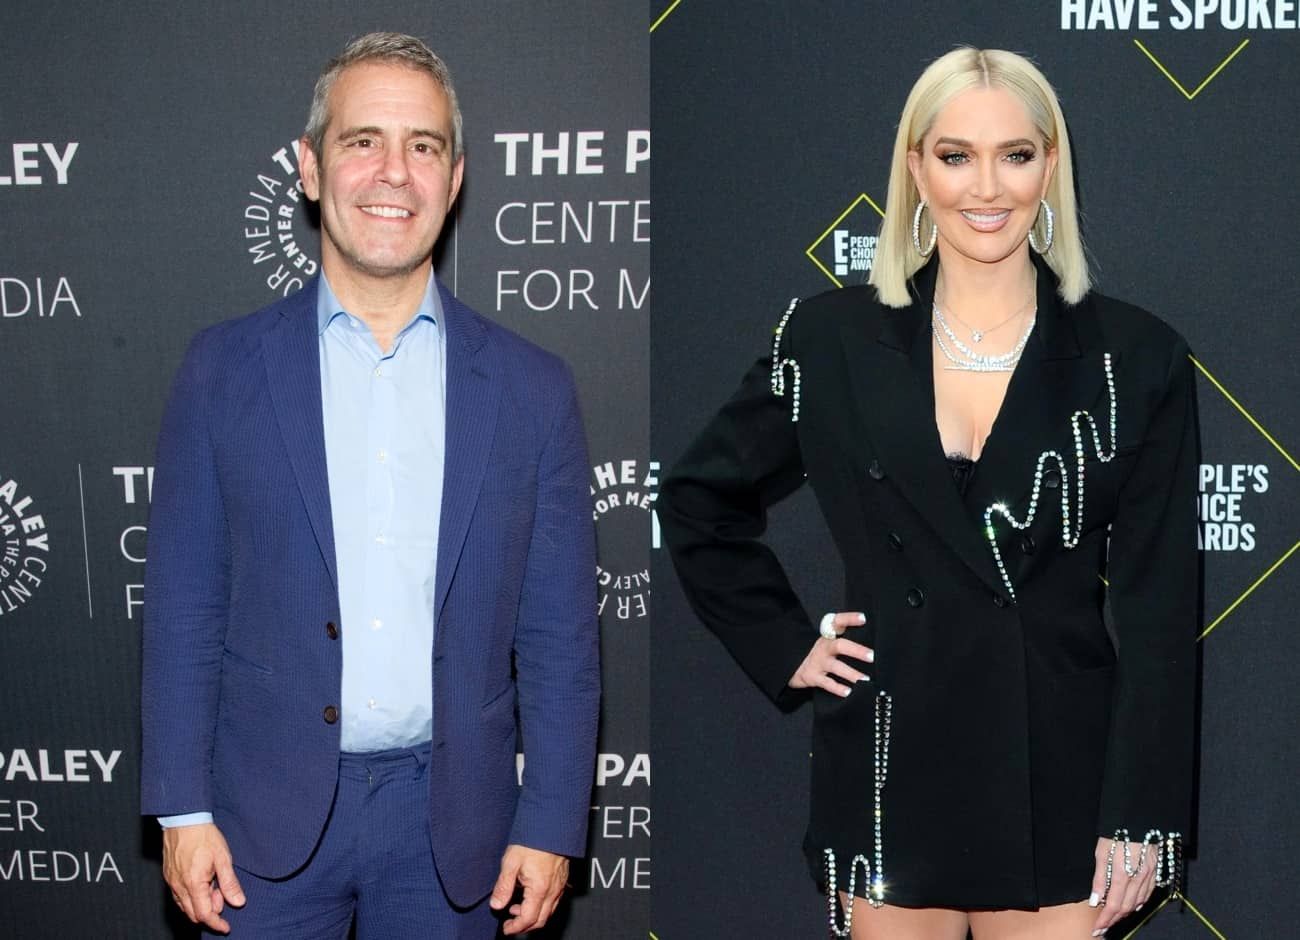 Andy Cohen Throws Major Shade at 'Chicago' Broadway Play and Its Cast! Find Out What He's Saying as He Praises RHOBH Star Erika Jayne's Performance